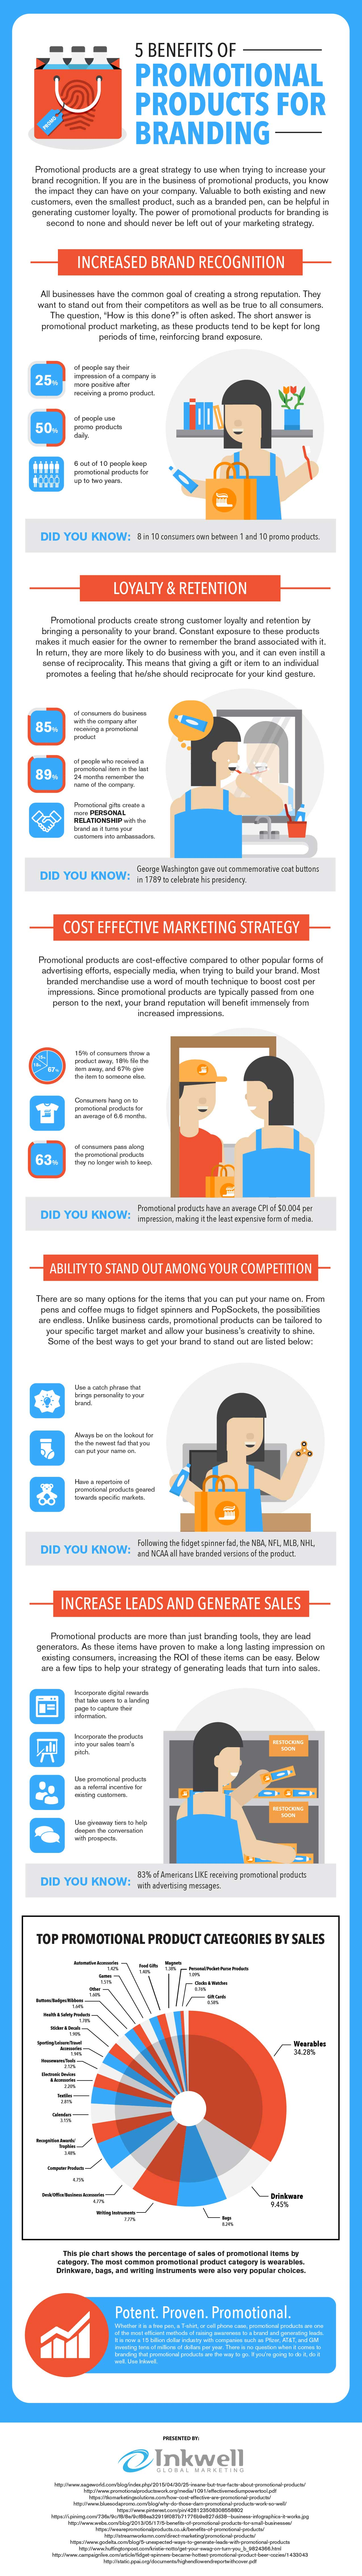 5 Benefits of Promotional Products for Branding #infographic #Marketing #Promotional Products #Branding #infographics